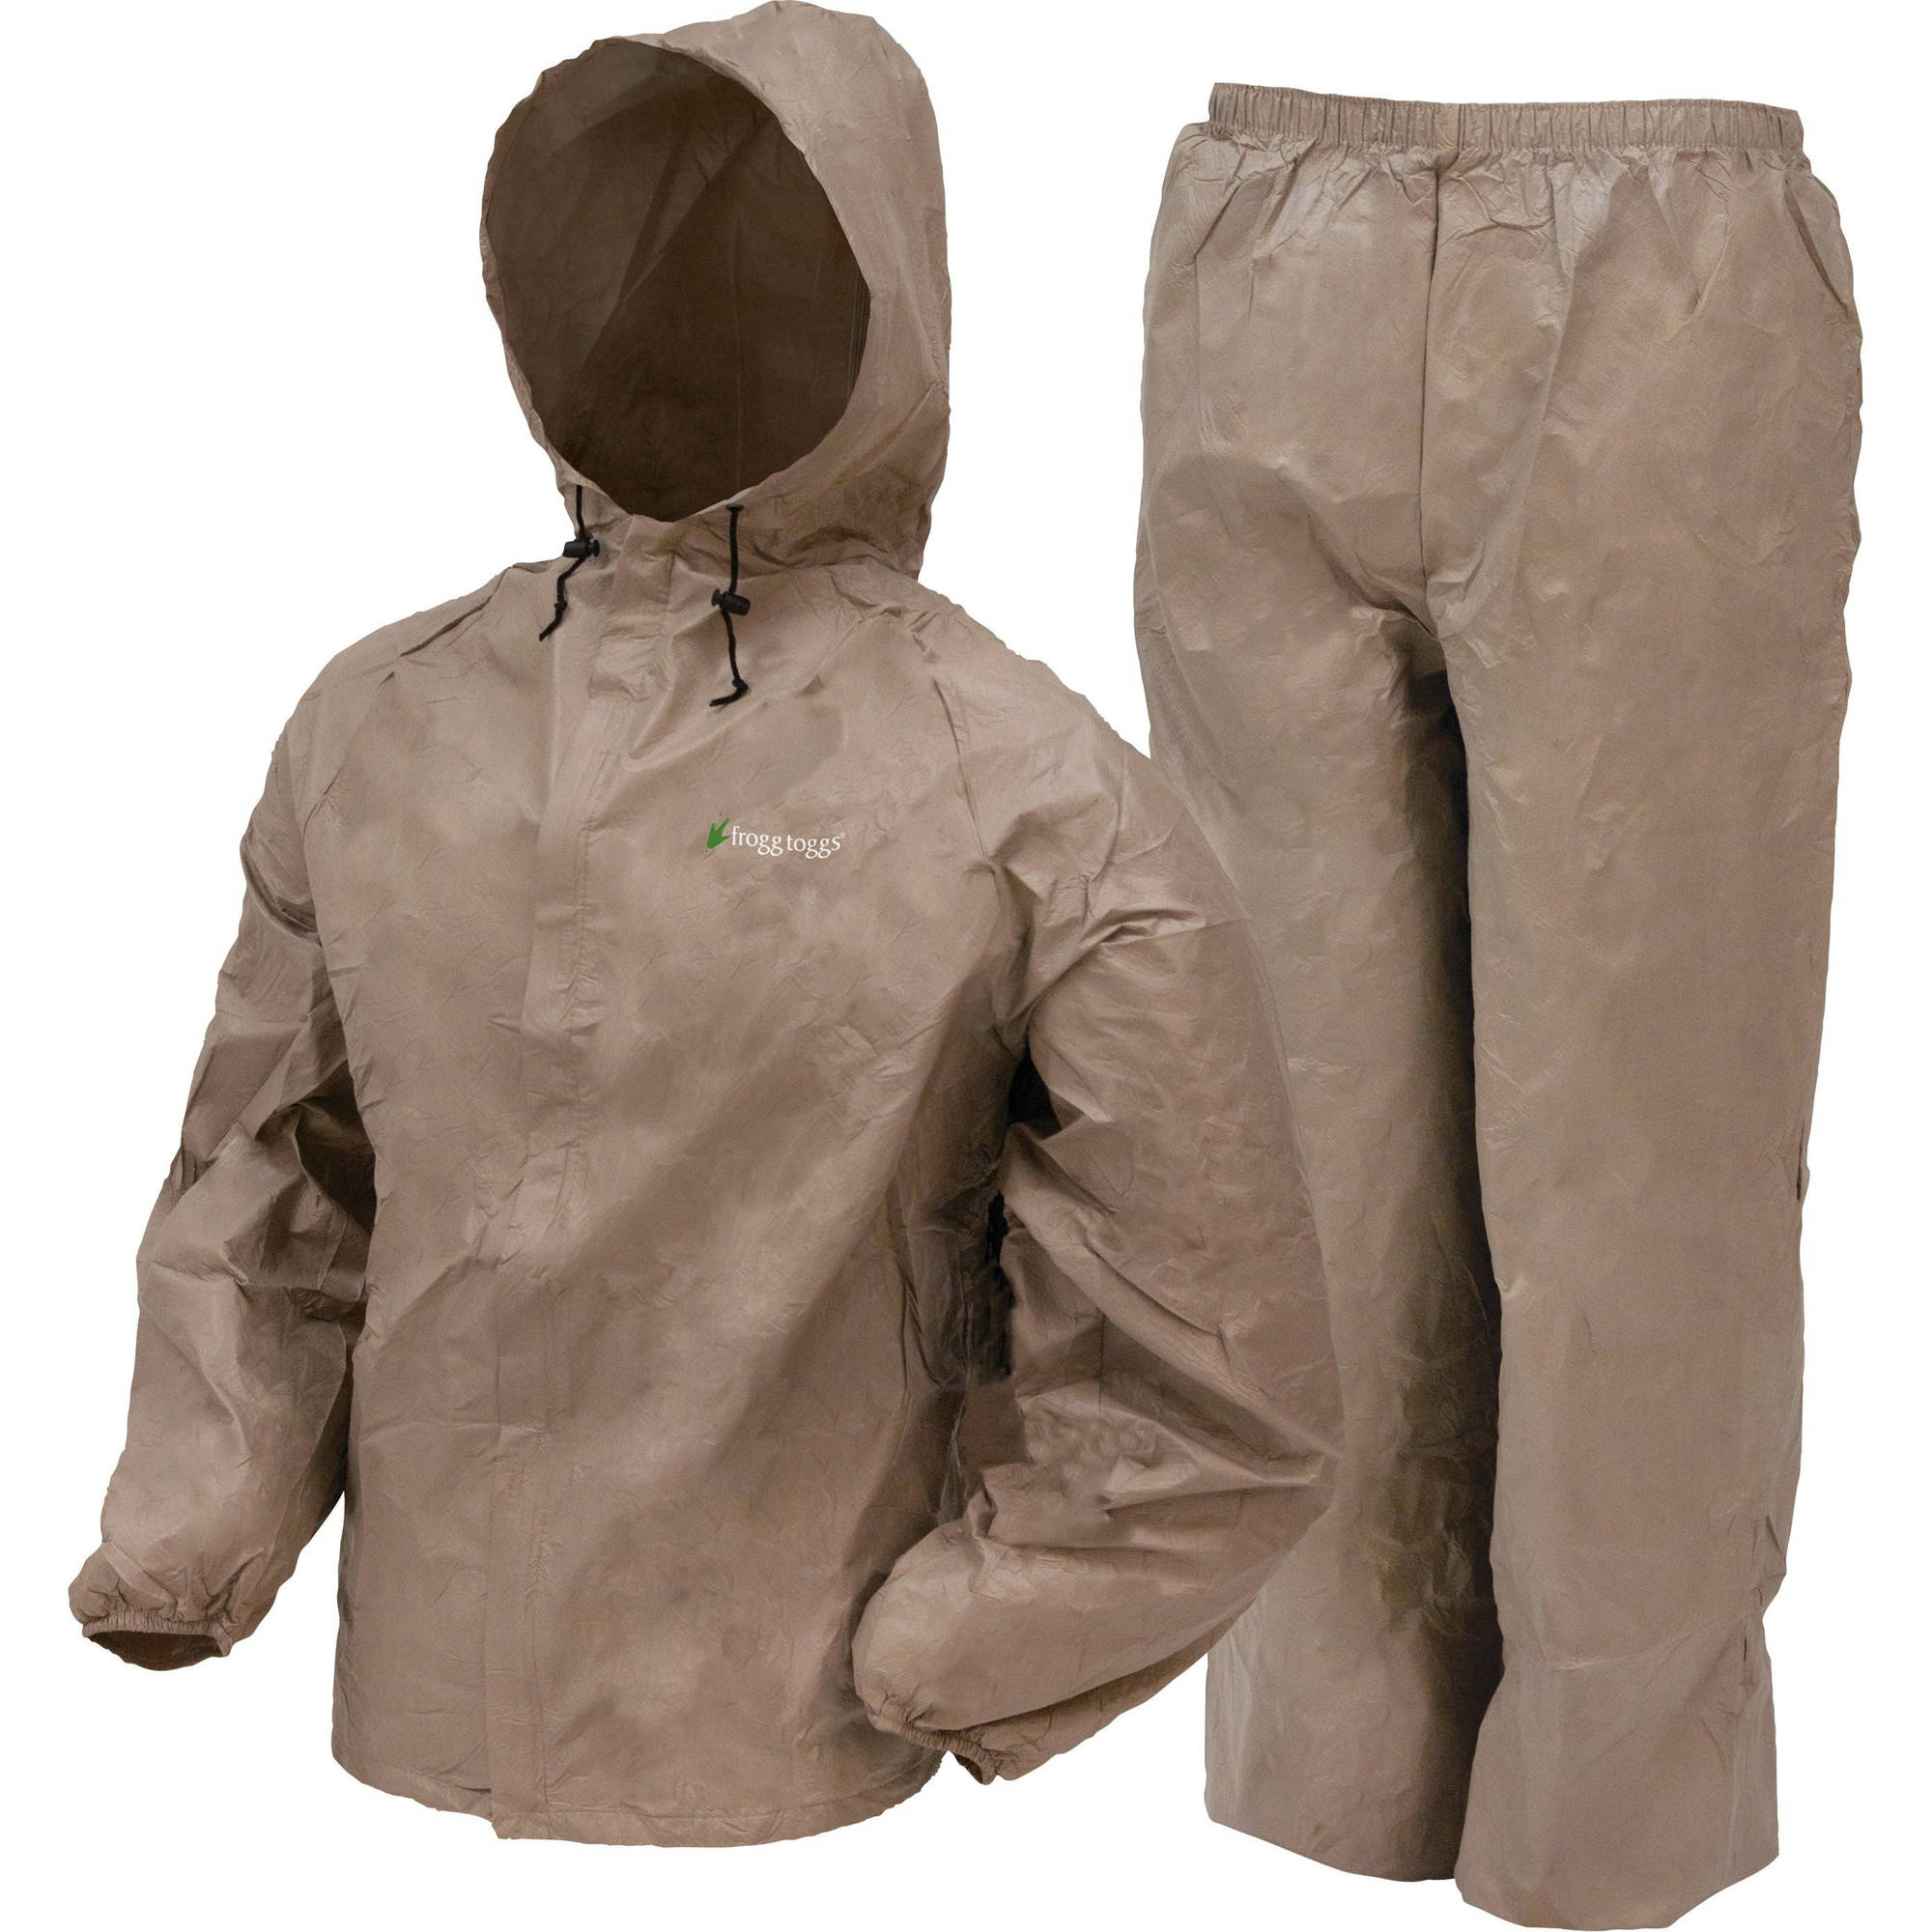 Frogg Toggs Ultra-Lightweight Rain Suit, Tan